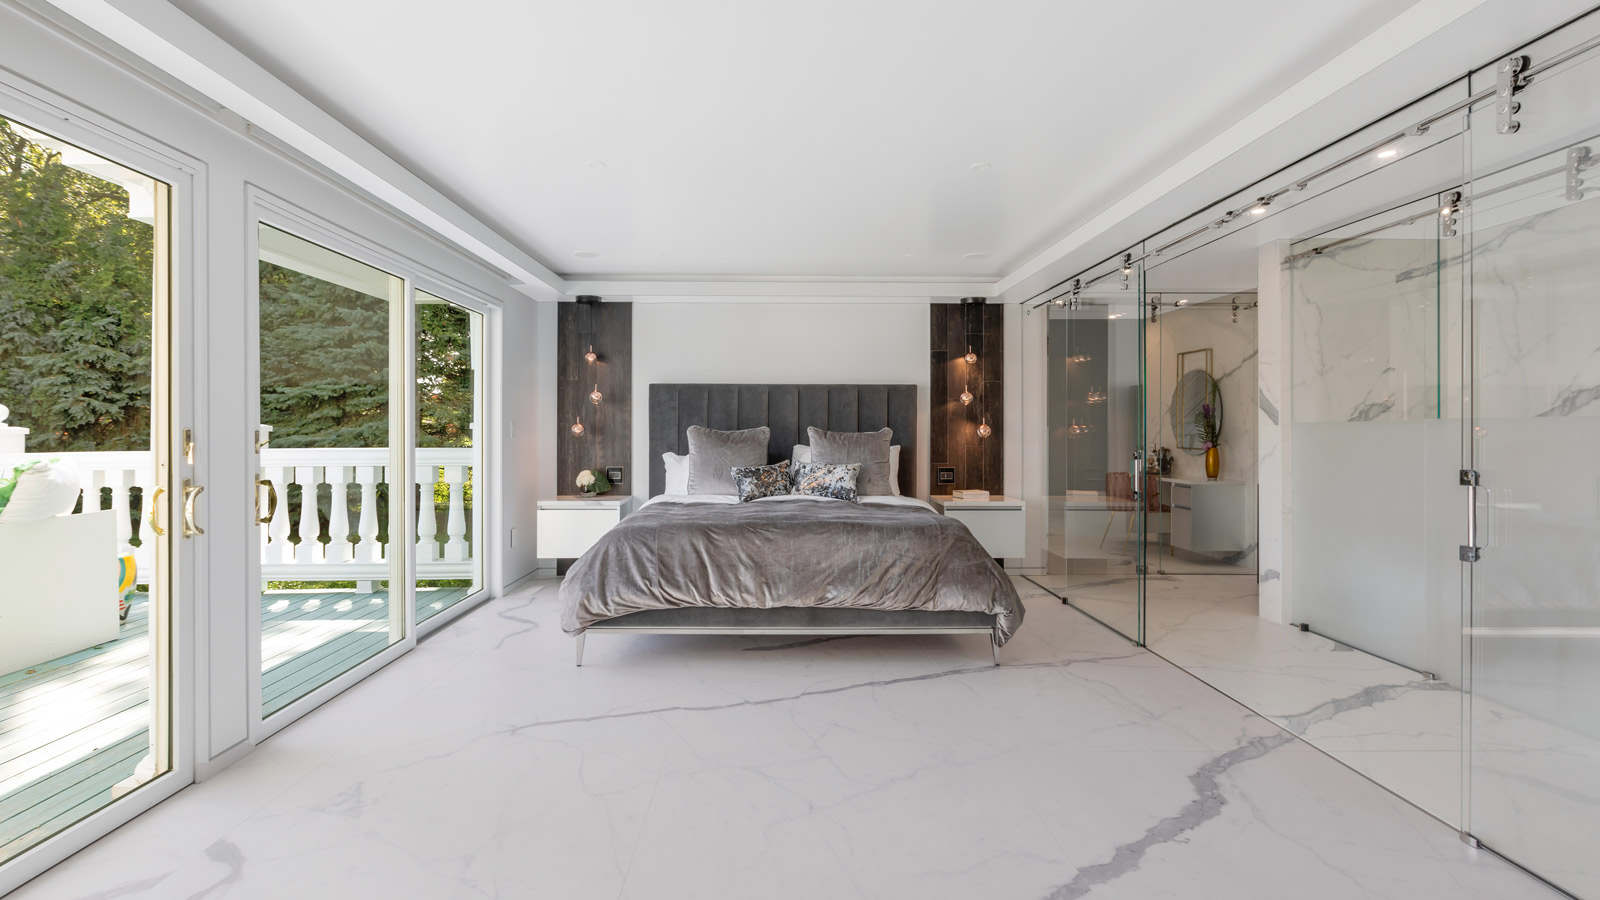 PORCELANOSA GROUP PROJECTS: A 'total white' home with infinite rooms featuring XTONE